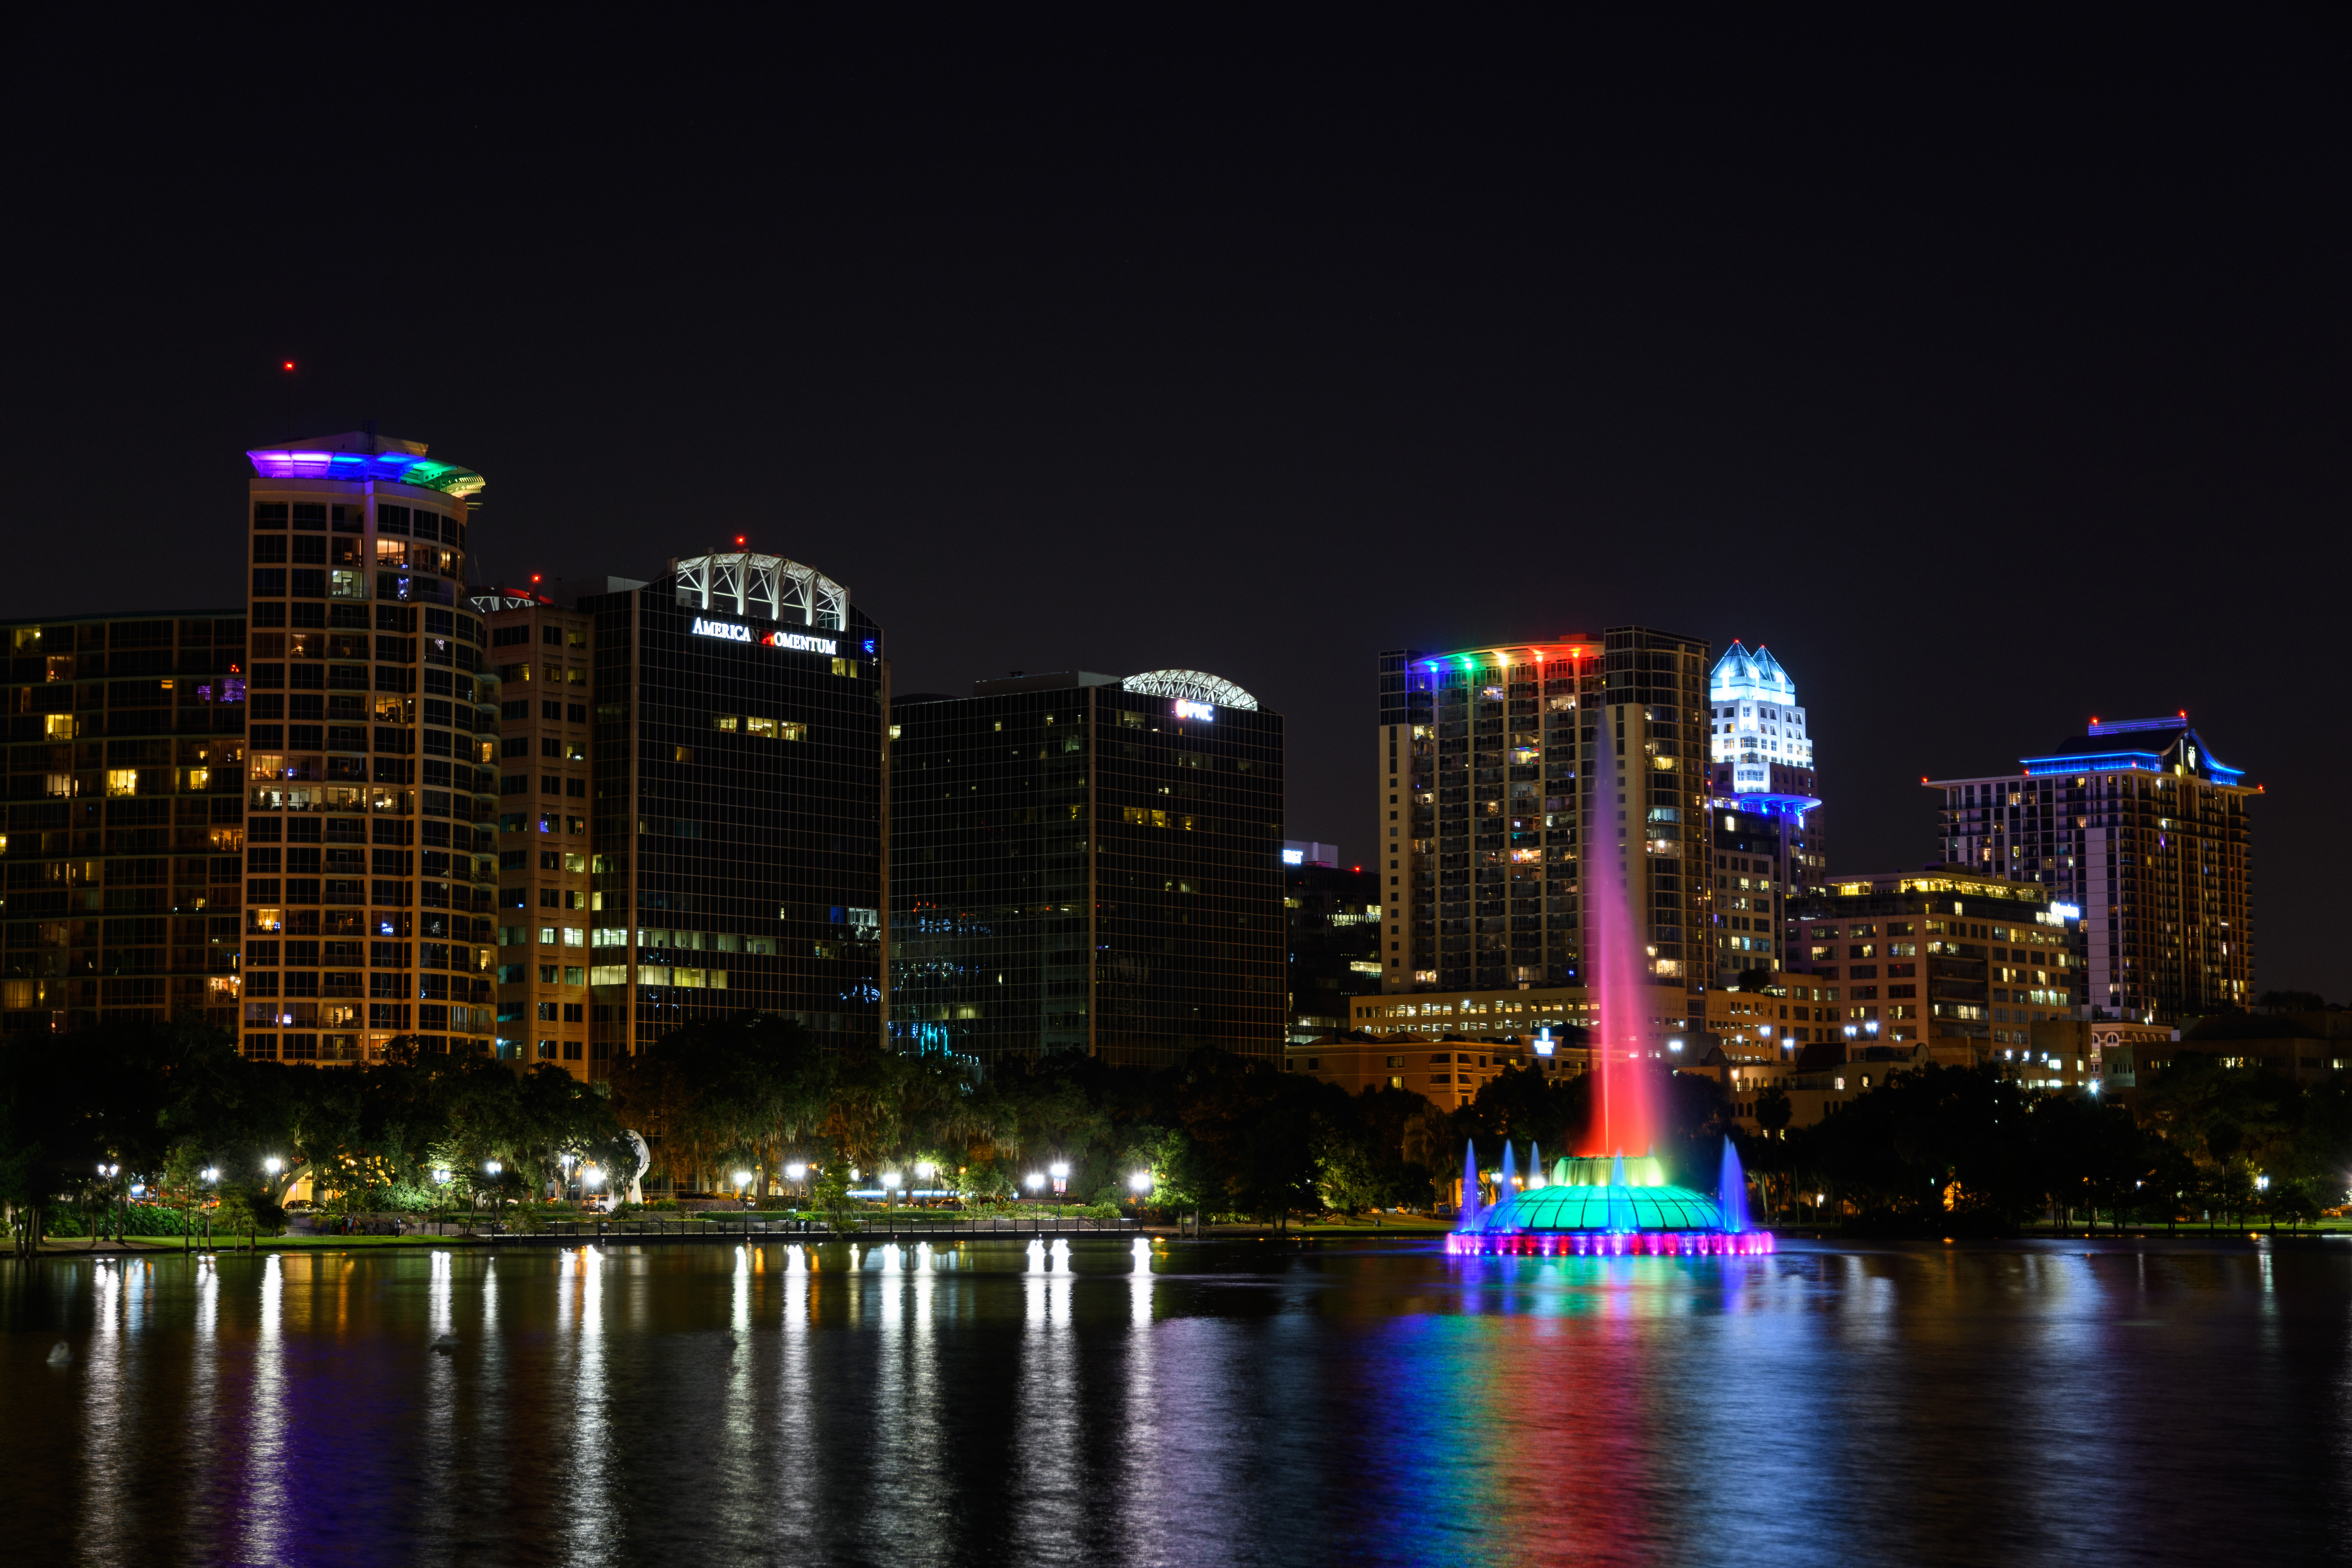 Lake Eola Fountain by Candy Perkinson